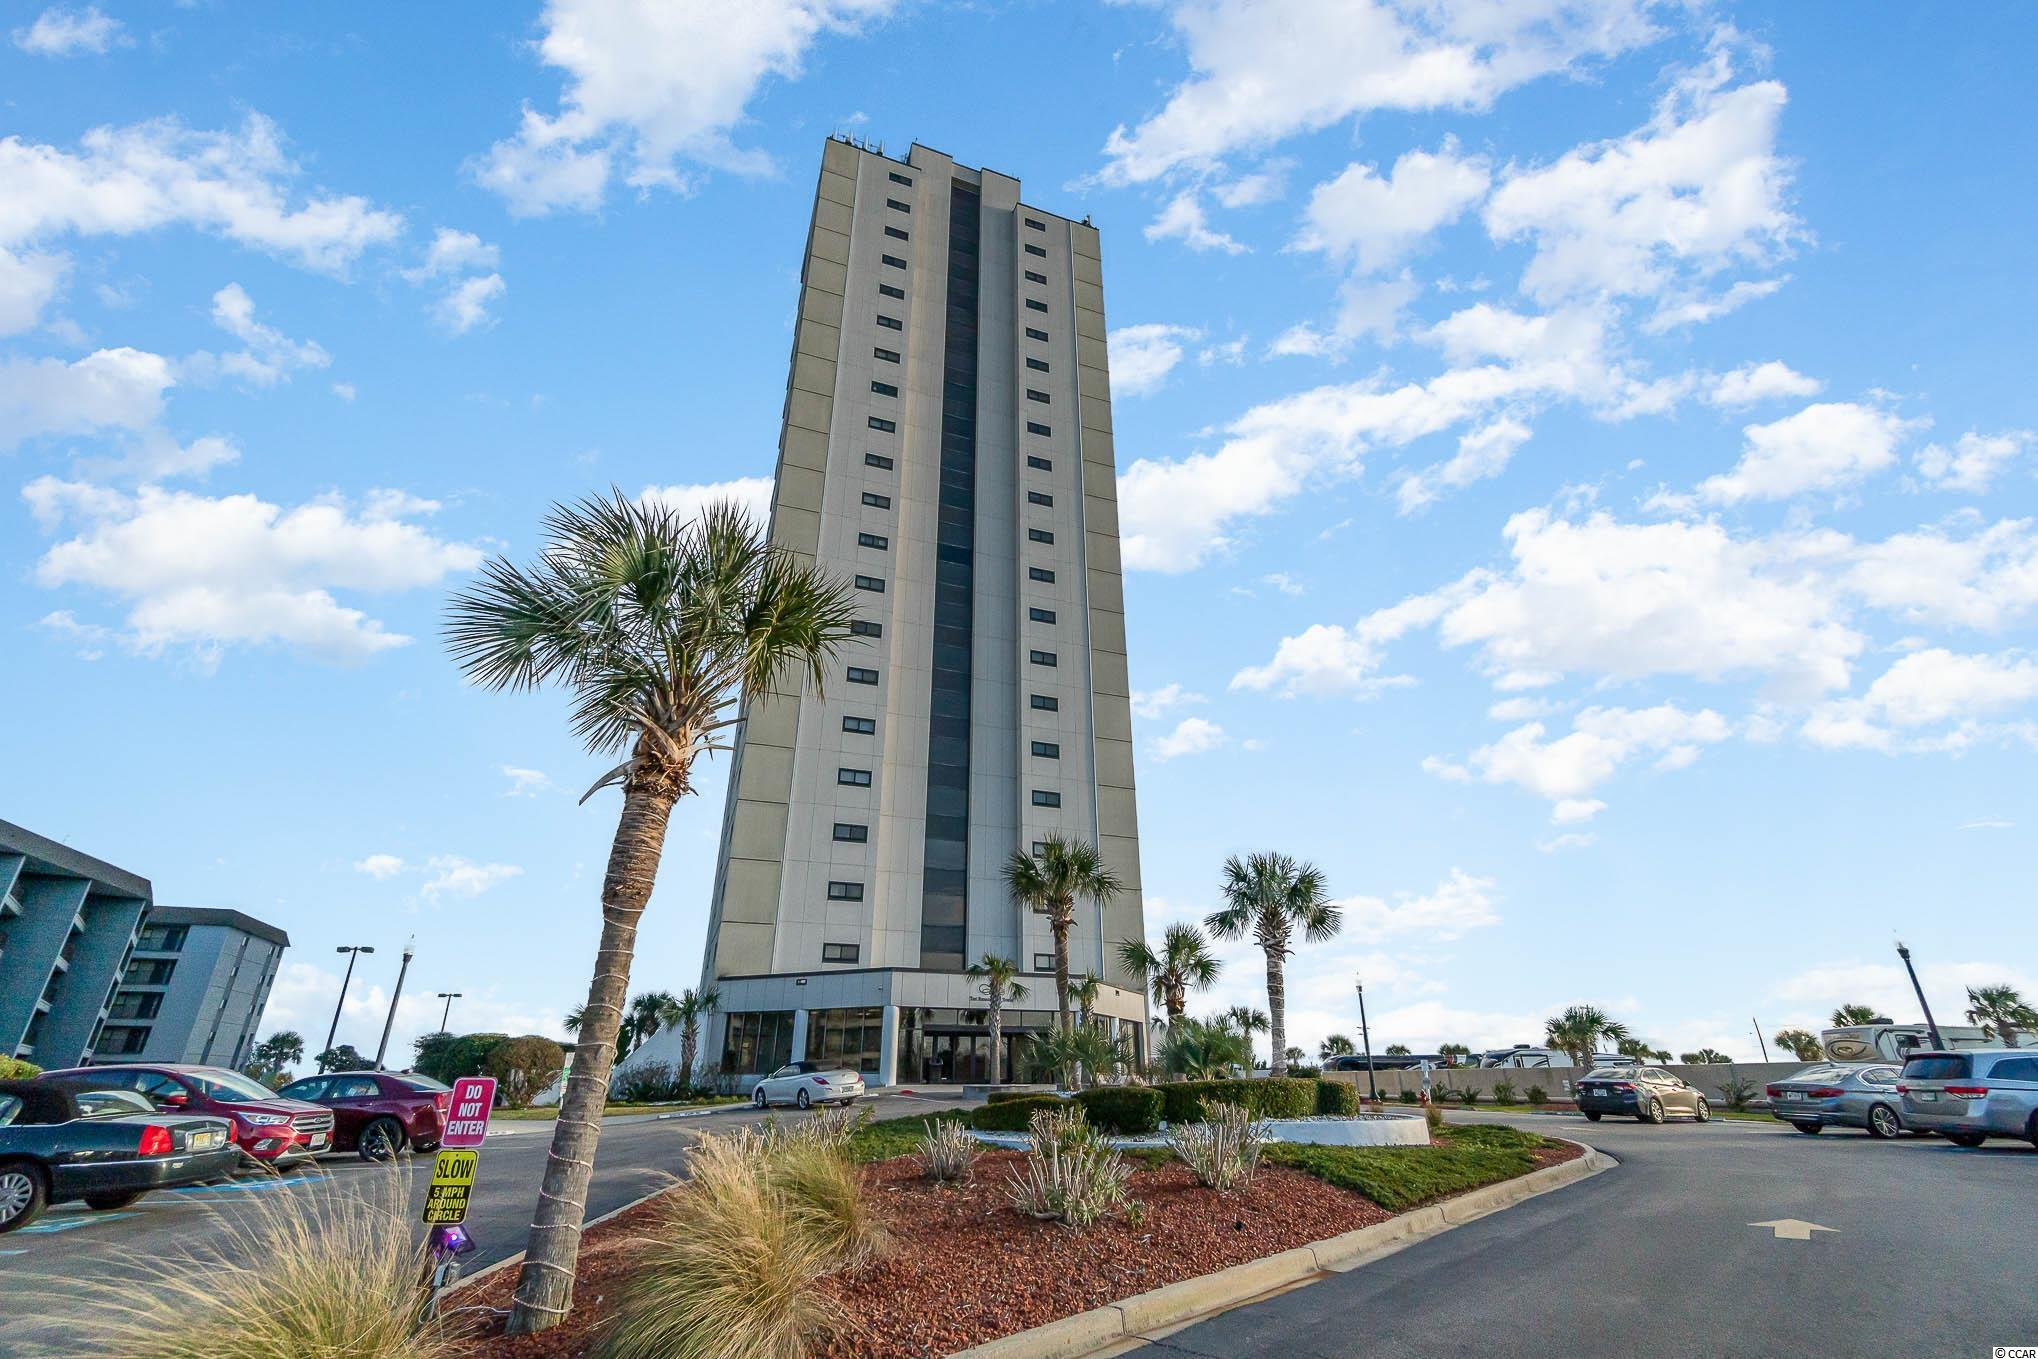 Located in the Myrtle Beach Resort at Renaissance Tower, this 2 bed, 2 bath Oceanview Condo comes fully furnished with everything you need to enjoy your stay. Sit outside on your private balcony and enjoy the the sights and sounds while drinking your morning coffee.  This unit is equipped with a full kitchen to prepare your meals. The bedrooms are spacious and offer ample closet space. There is enough room in the condo for the entire family to enjoy comfortably.  MB Resort has 33 acres and many amenities including 4 outdoor & 2 indoor pools, 4 hot tubs, a mini water park with lazy river, 2 playgrounds, basketball, bocce & volleyball courts, 4 lighted tennis courts, fitness center, 3 steam rooms, on-site restaurants, a convenience store/gift shop, and so much more!  Conveniently located to golf, shopping, dining & entertainment, area attractions, the airport and so many other things to do!  Schedule your showing today!